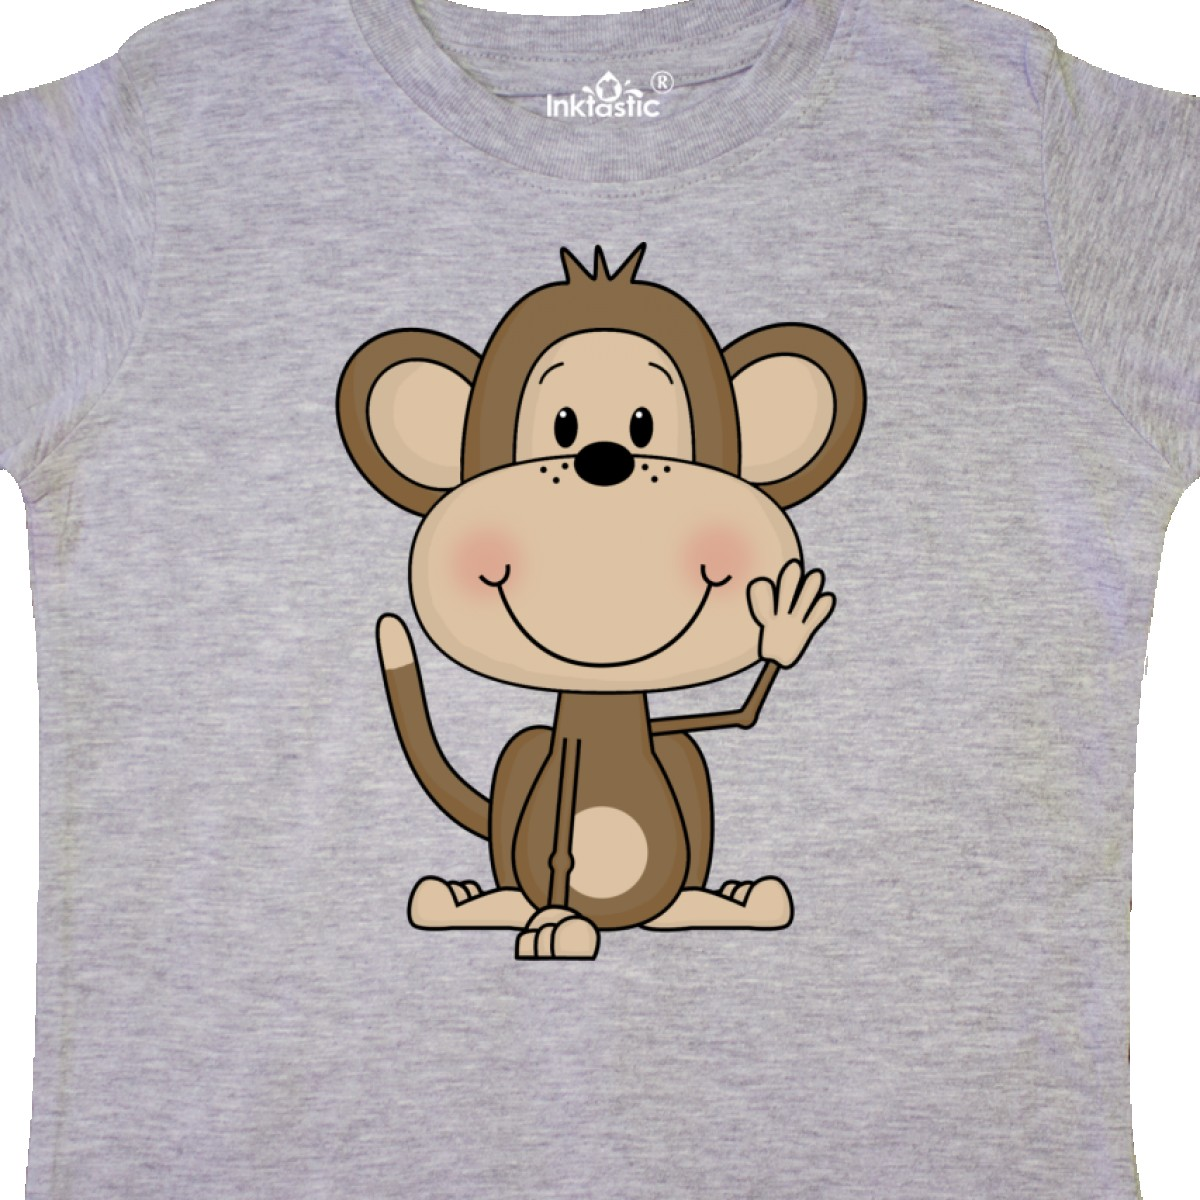 Inktastic-Monkey-Toddler-T-Shirt-Cute-Baby-Monkeys-Bananas-Giraffe-Acrobats-Of thumbnail 8